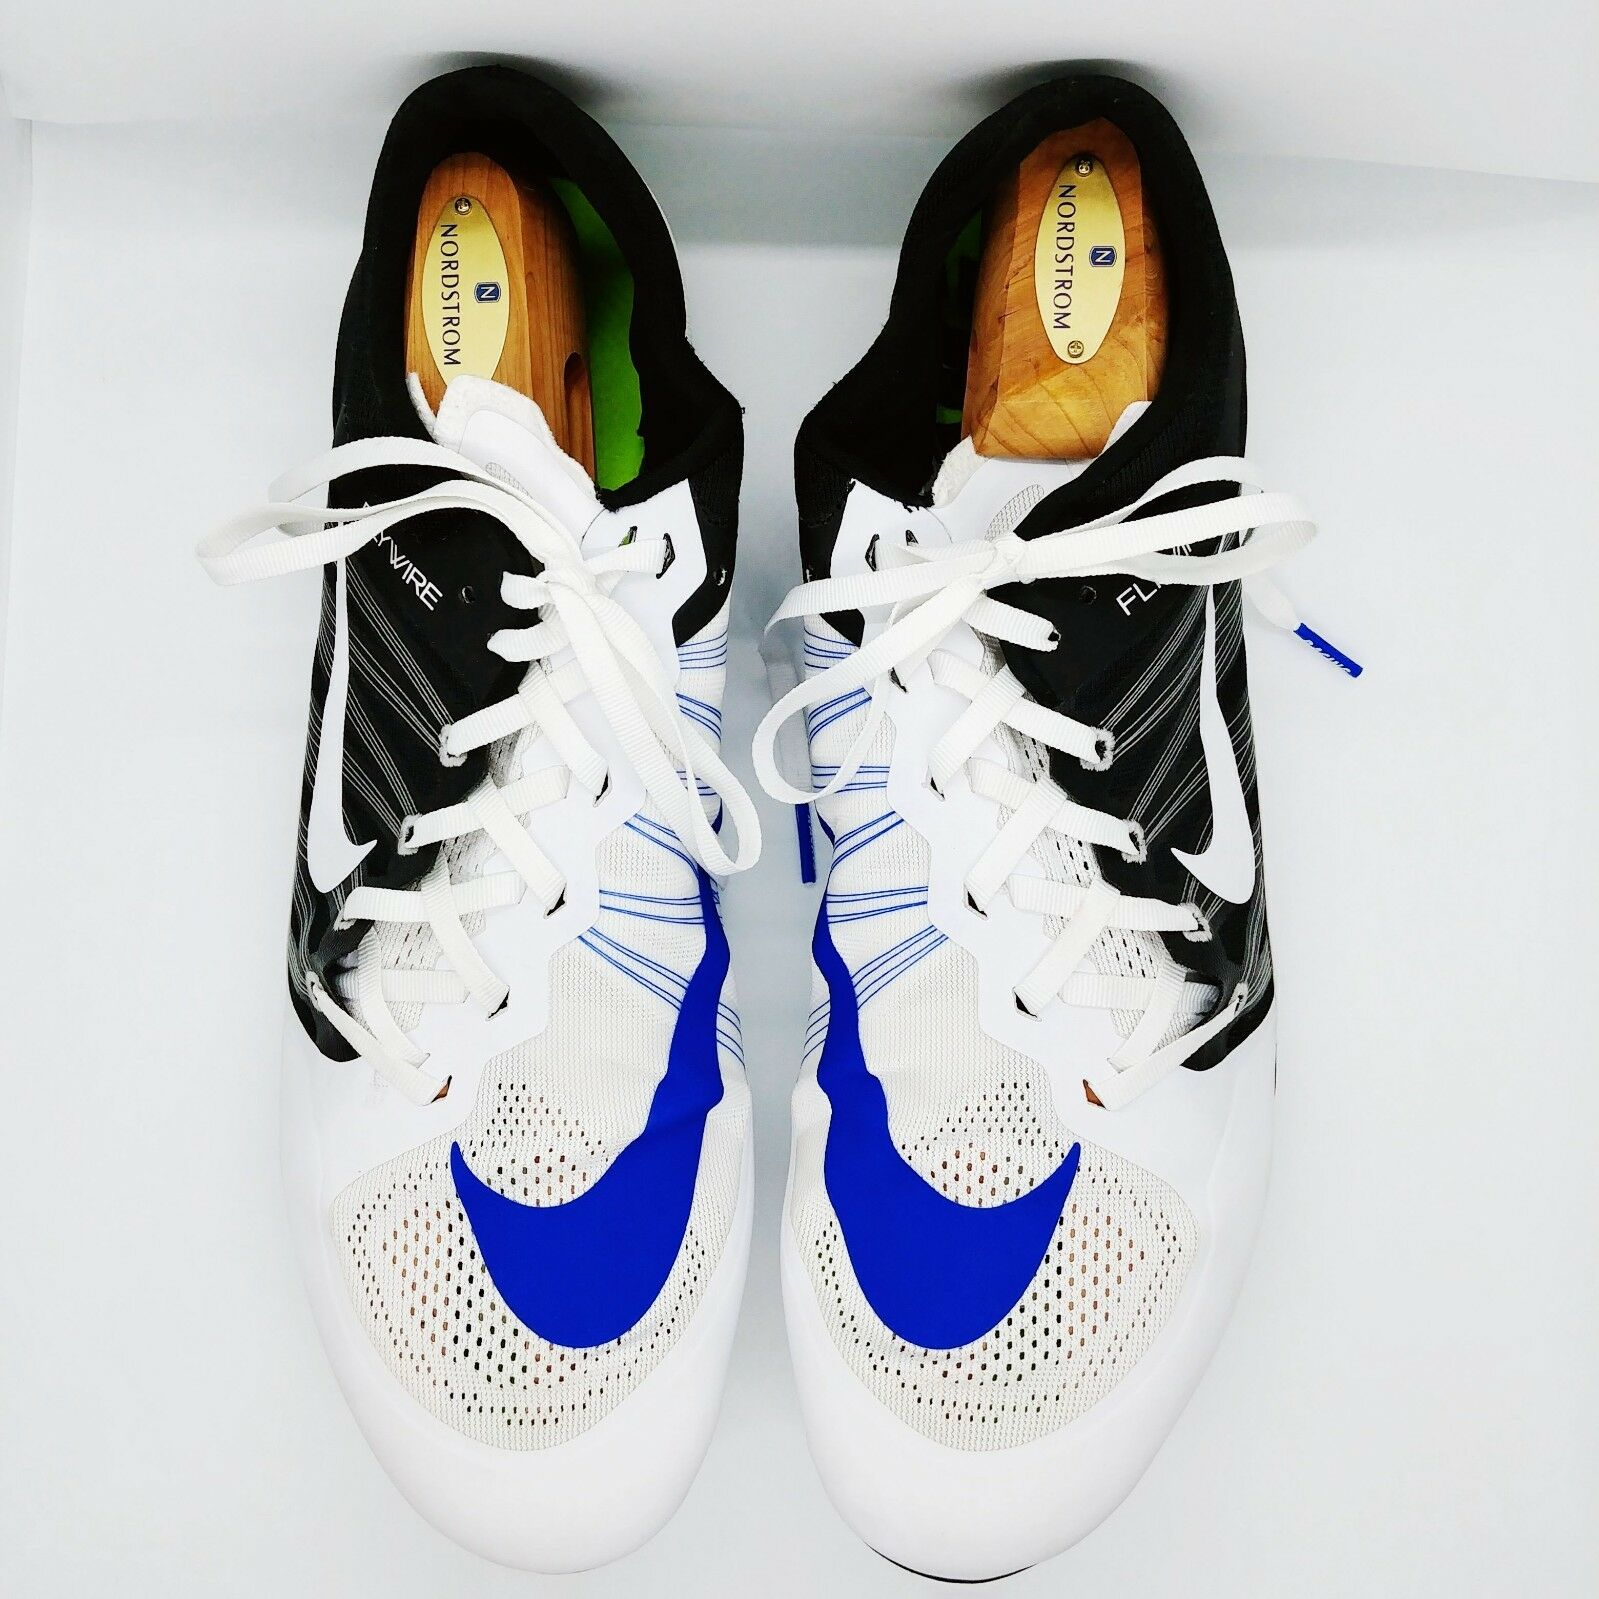 Nike Zoom Ja Fly 2 Track Spikes Athletic shoes Men's 15 Flywire Sprint  - New